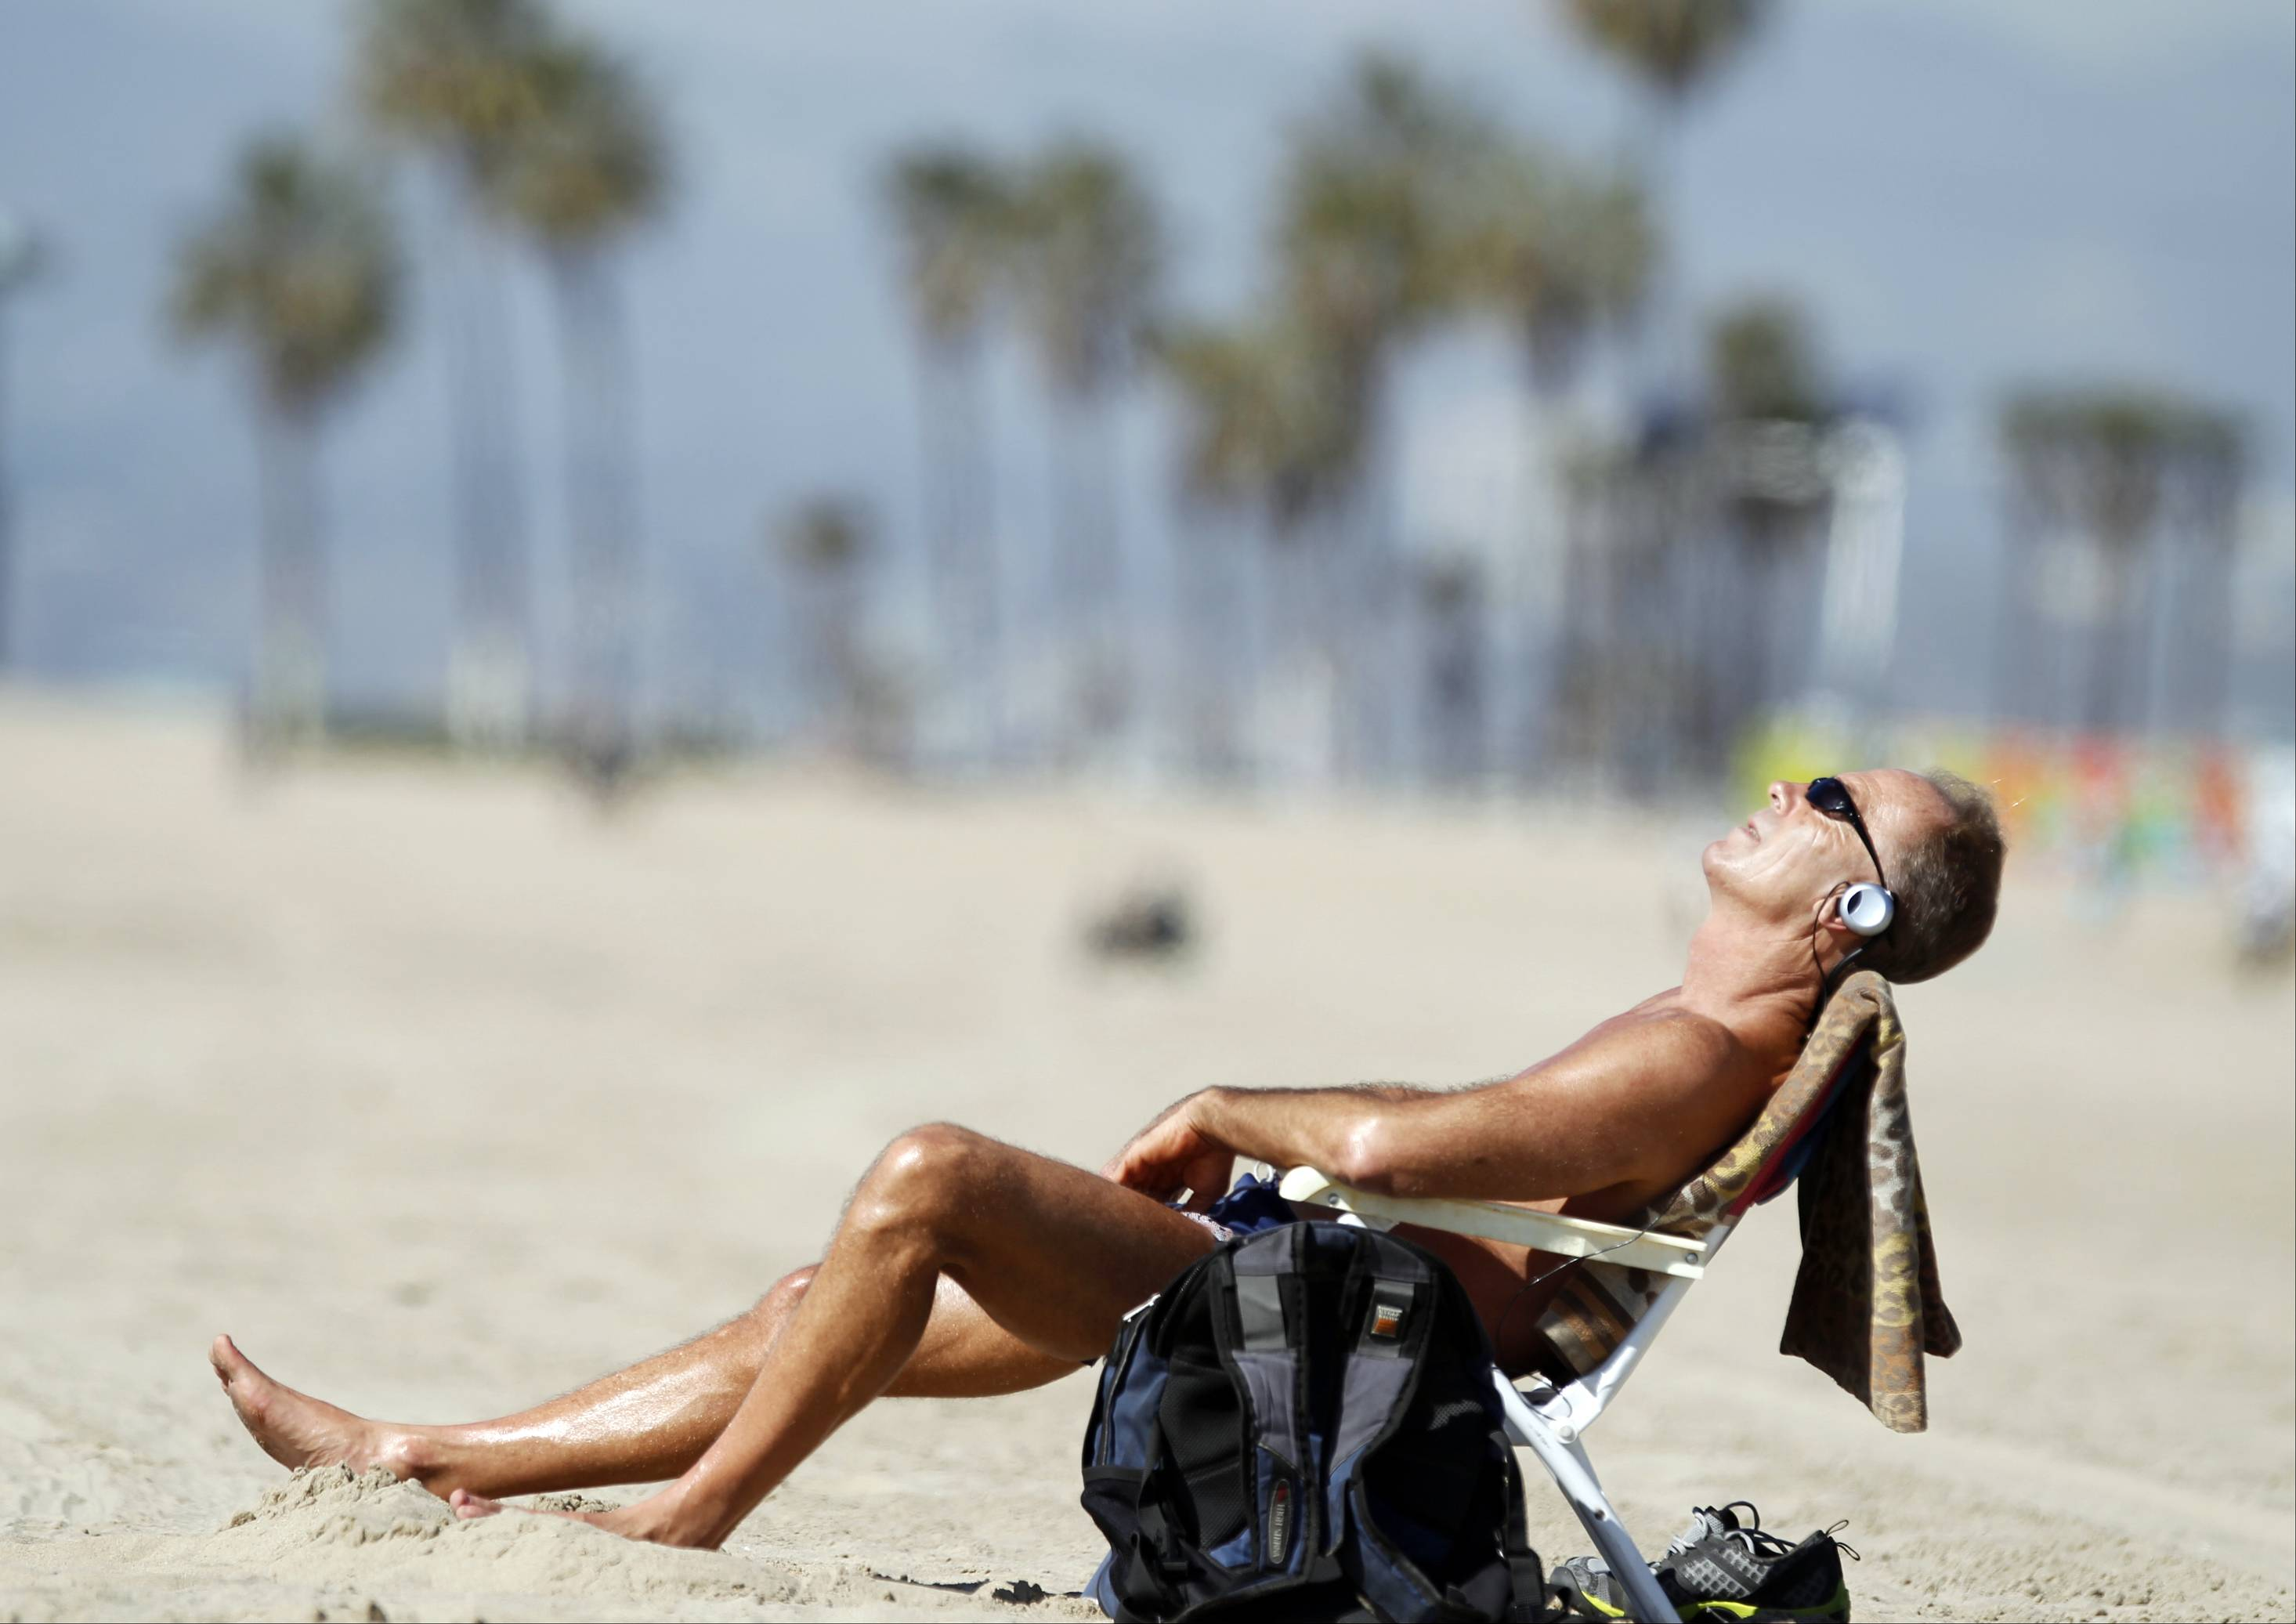 Venice Beach resident David Lomax enjoys the warm weather Friday in the Venice Beach area of Los Angeles. While a drought has stricken central California, southern grape growers report a record harvest for 2013.